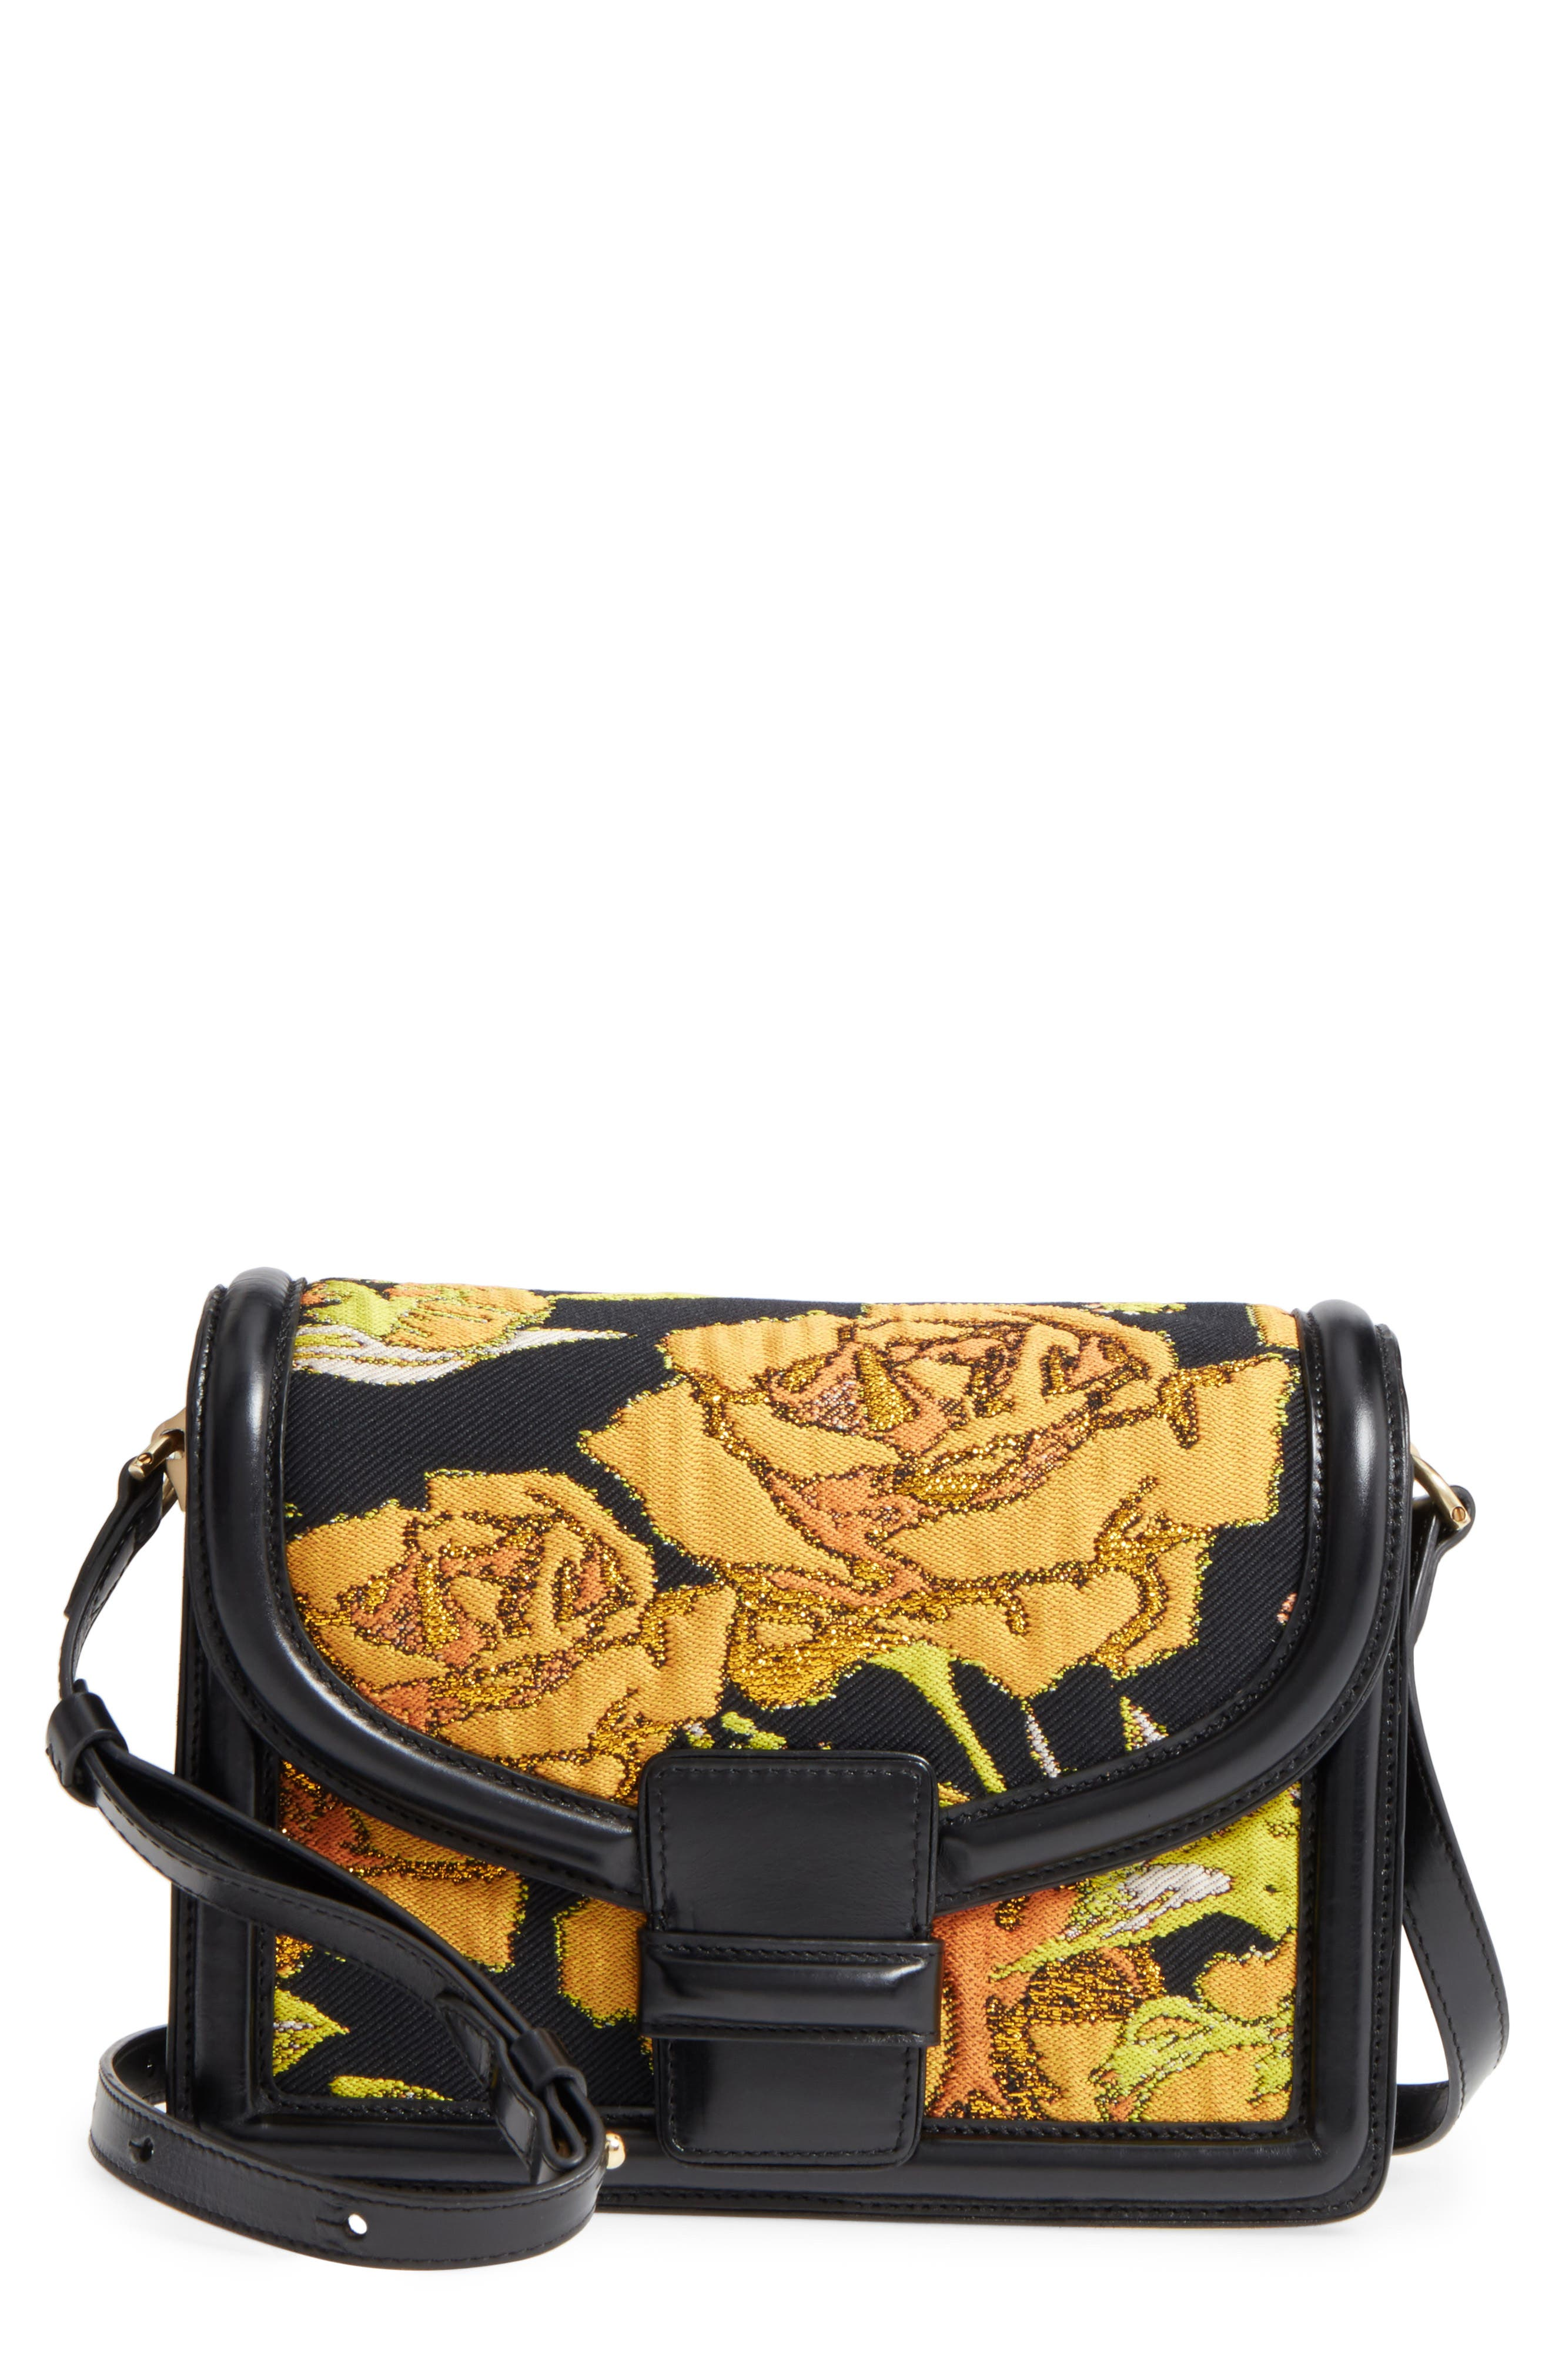 Dries Van Noten Floral Jacquard & Leather Crossbody Bag